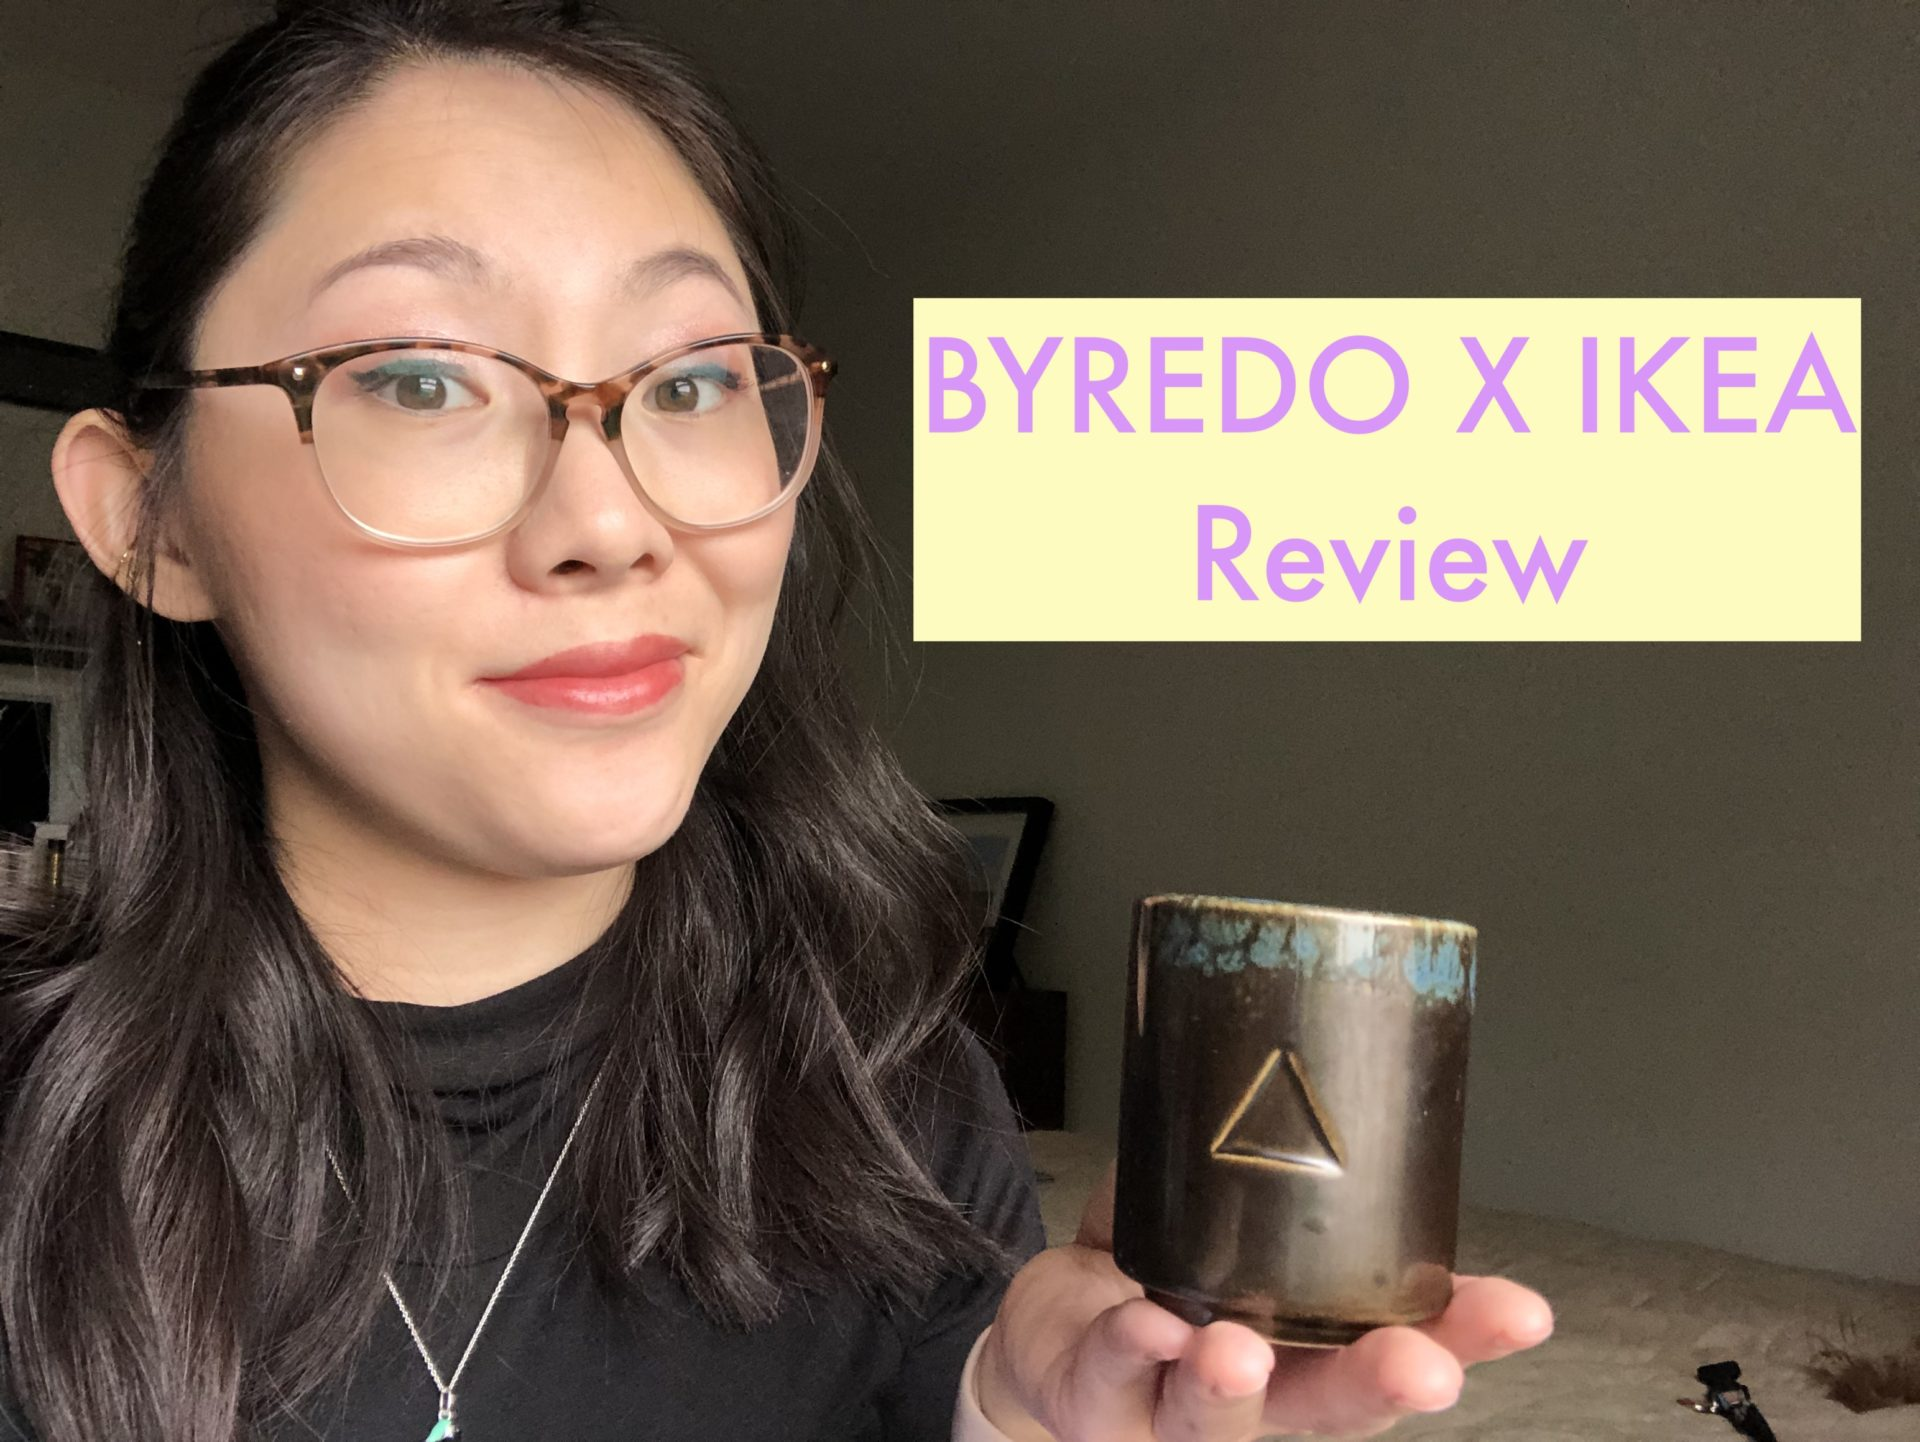 Byredo (Ben Gorham) x IKEA Limited Edition Home Fragrance Collection | Review + Thoughts